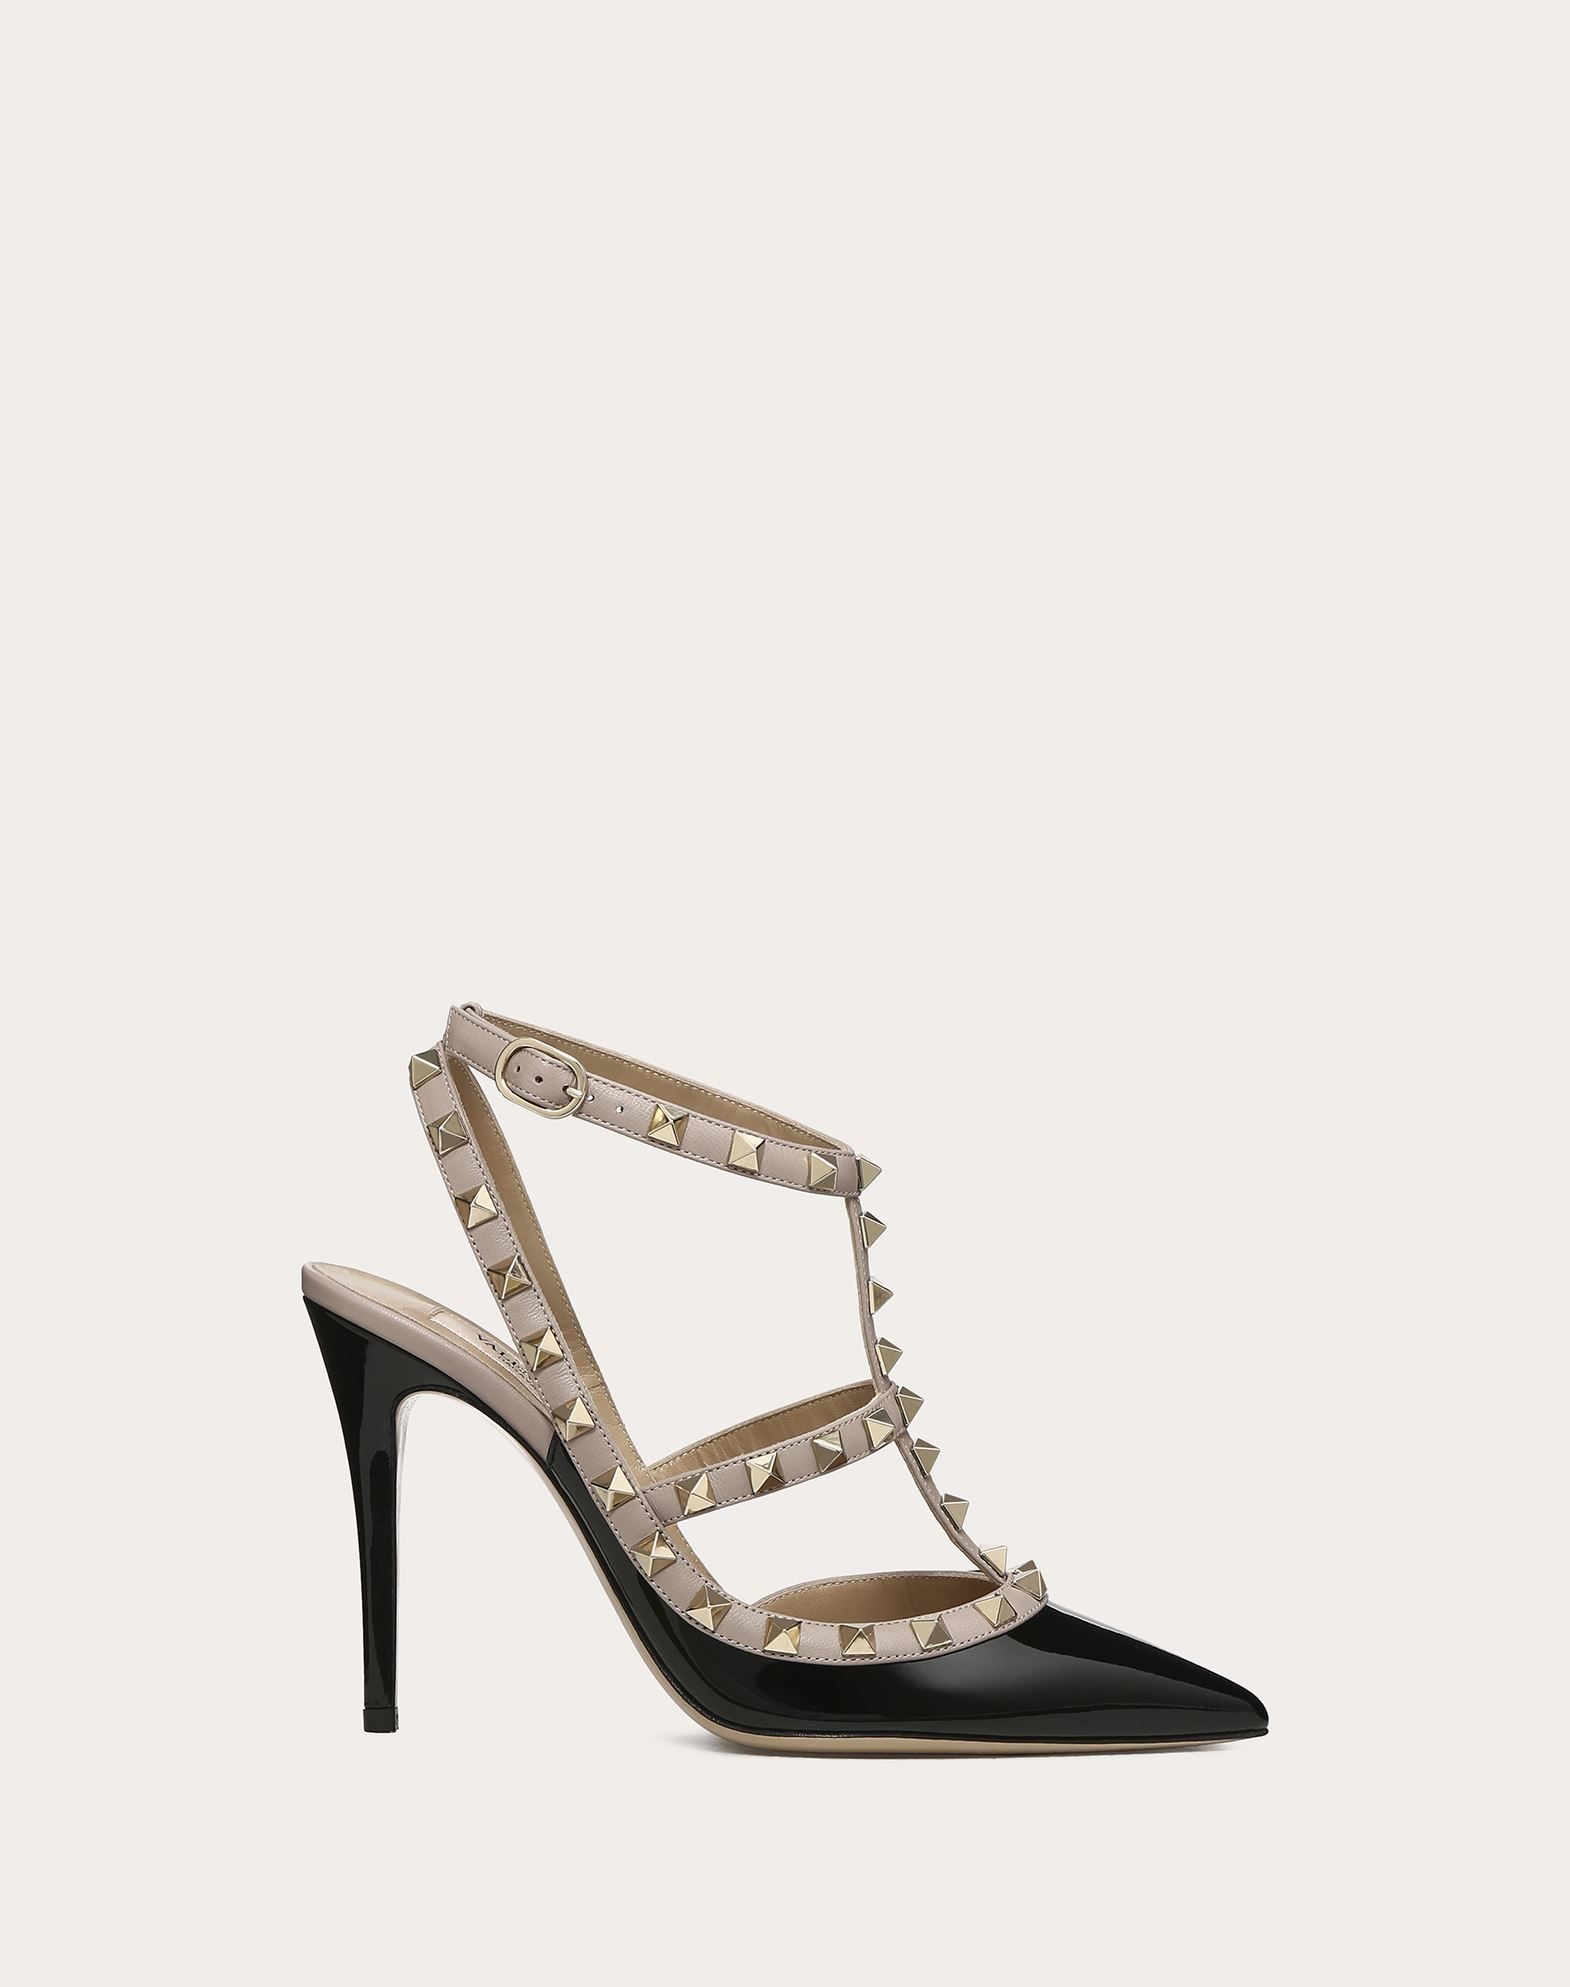 stud chouquette week rock fave valentino of rockstud shoes the